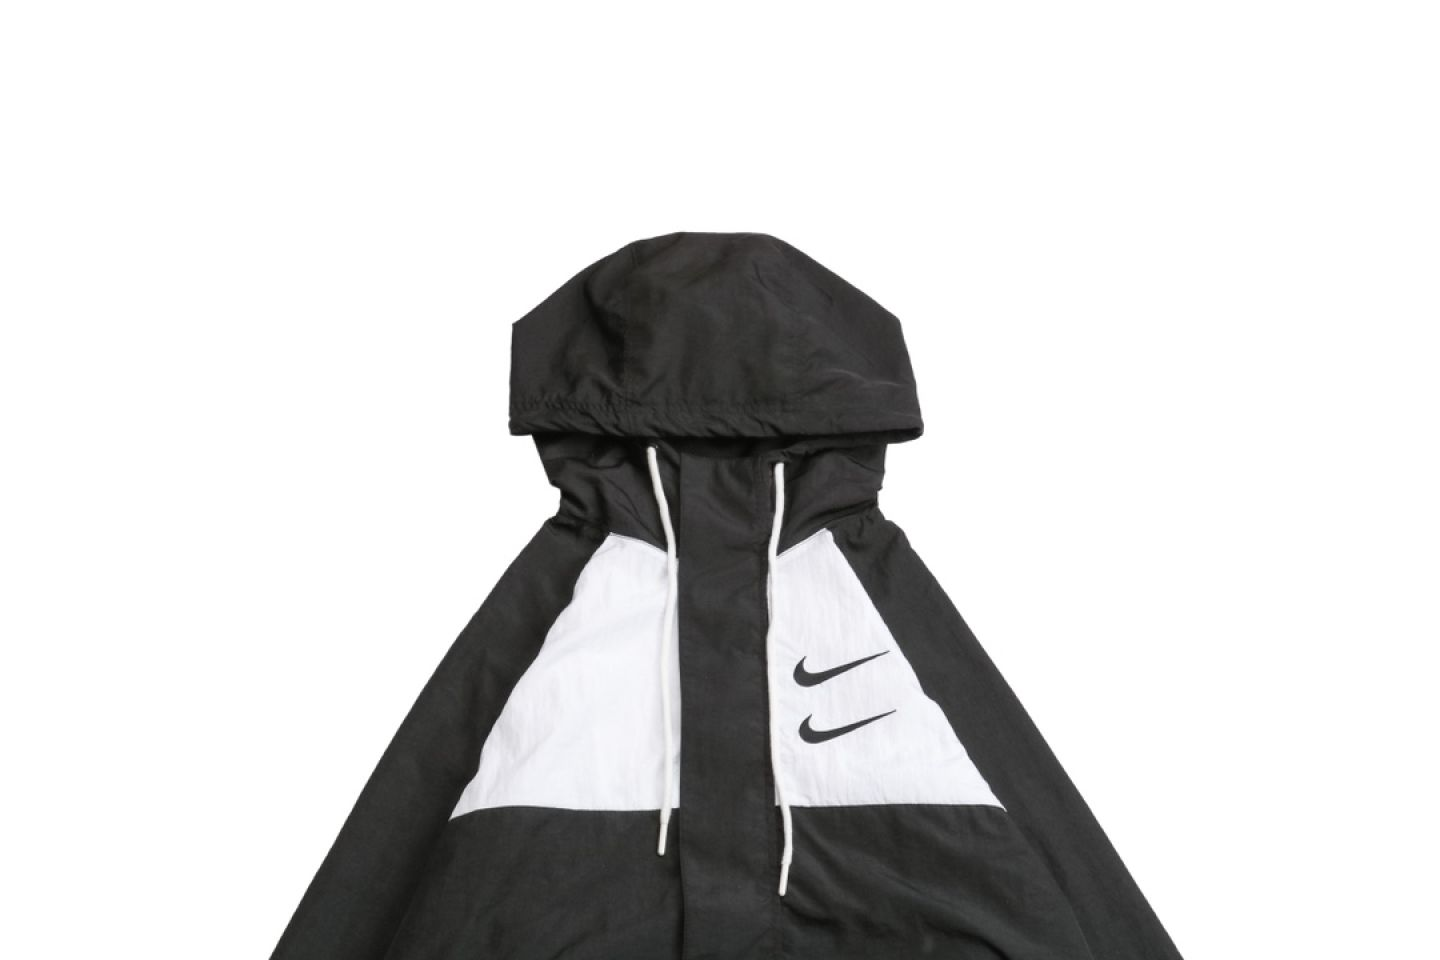 "Jacket Nike 20ss Swoosh Double Hook Long Sleeve Hooded Sports Jacket ""Black"" 2 nike_20ss_swoosh_double_hook_long_sleeve_hooded_sports_jacket_black__2"